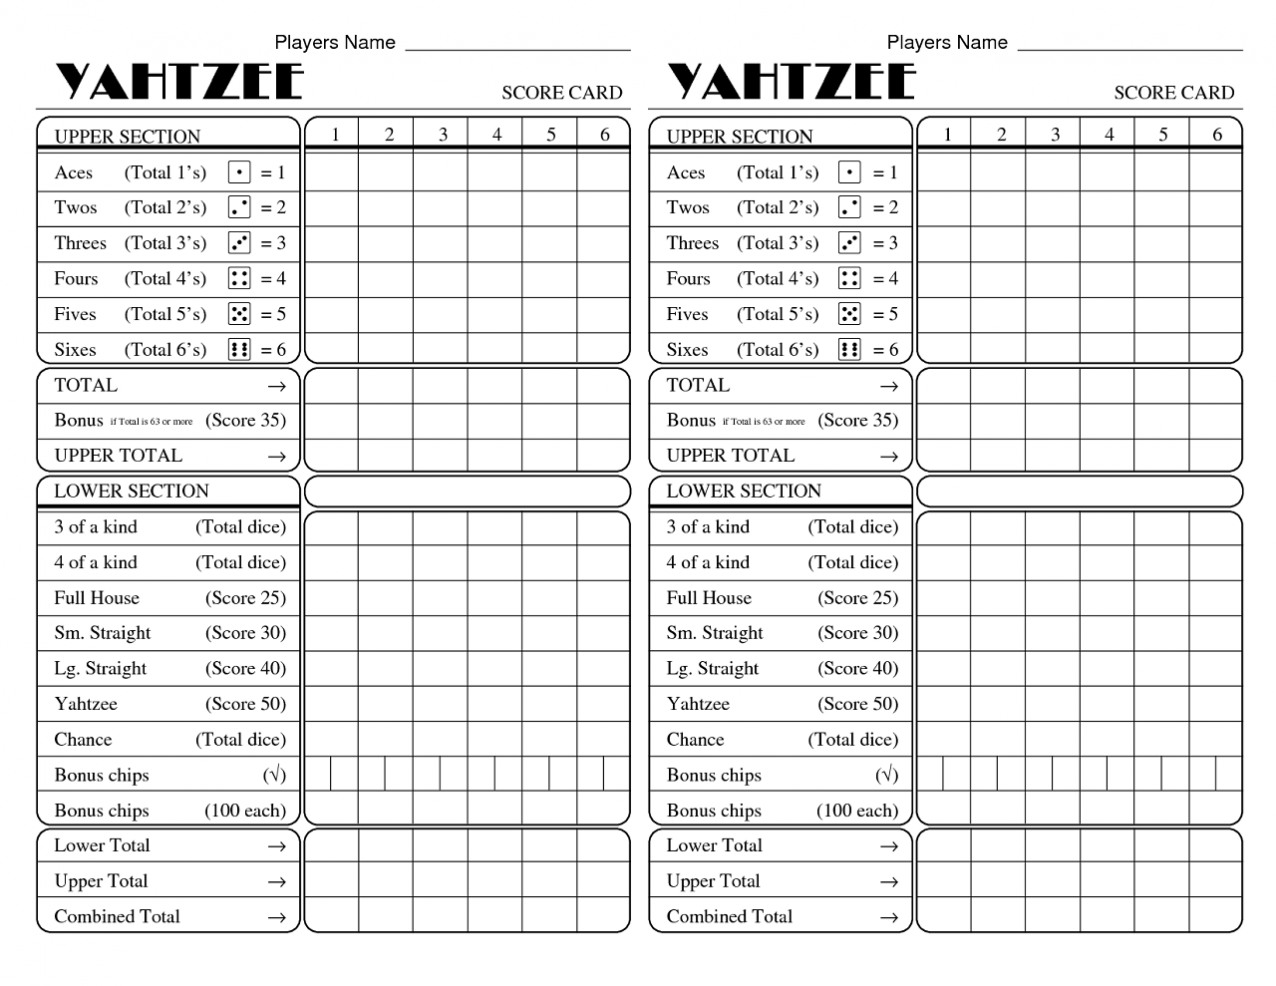 Pin By Gary Dunn On Svg Yahtzee Score Sheets Yahtzee Score Card Yahtzee